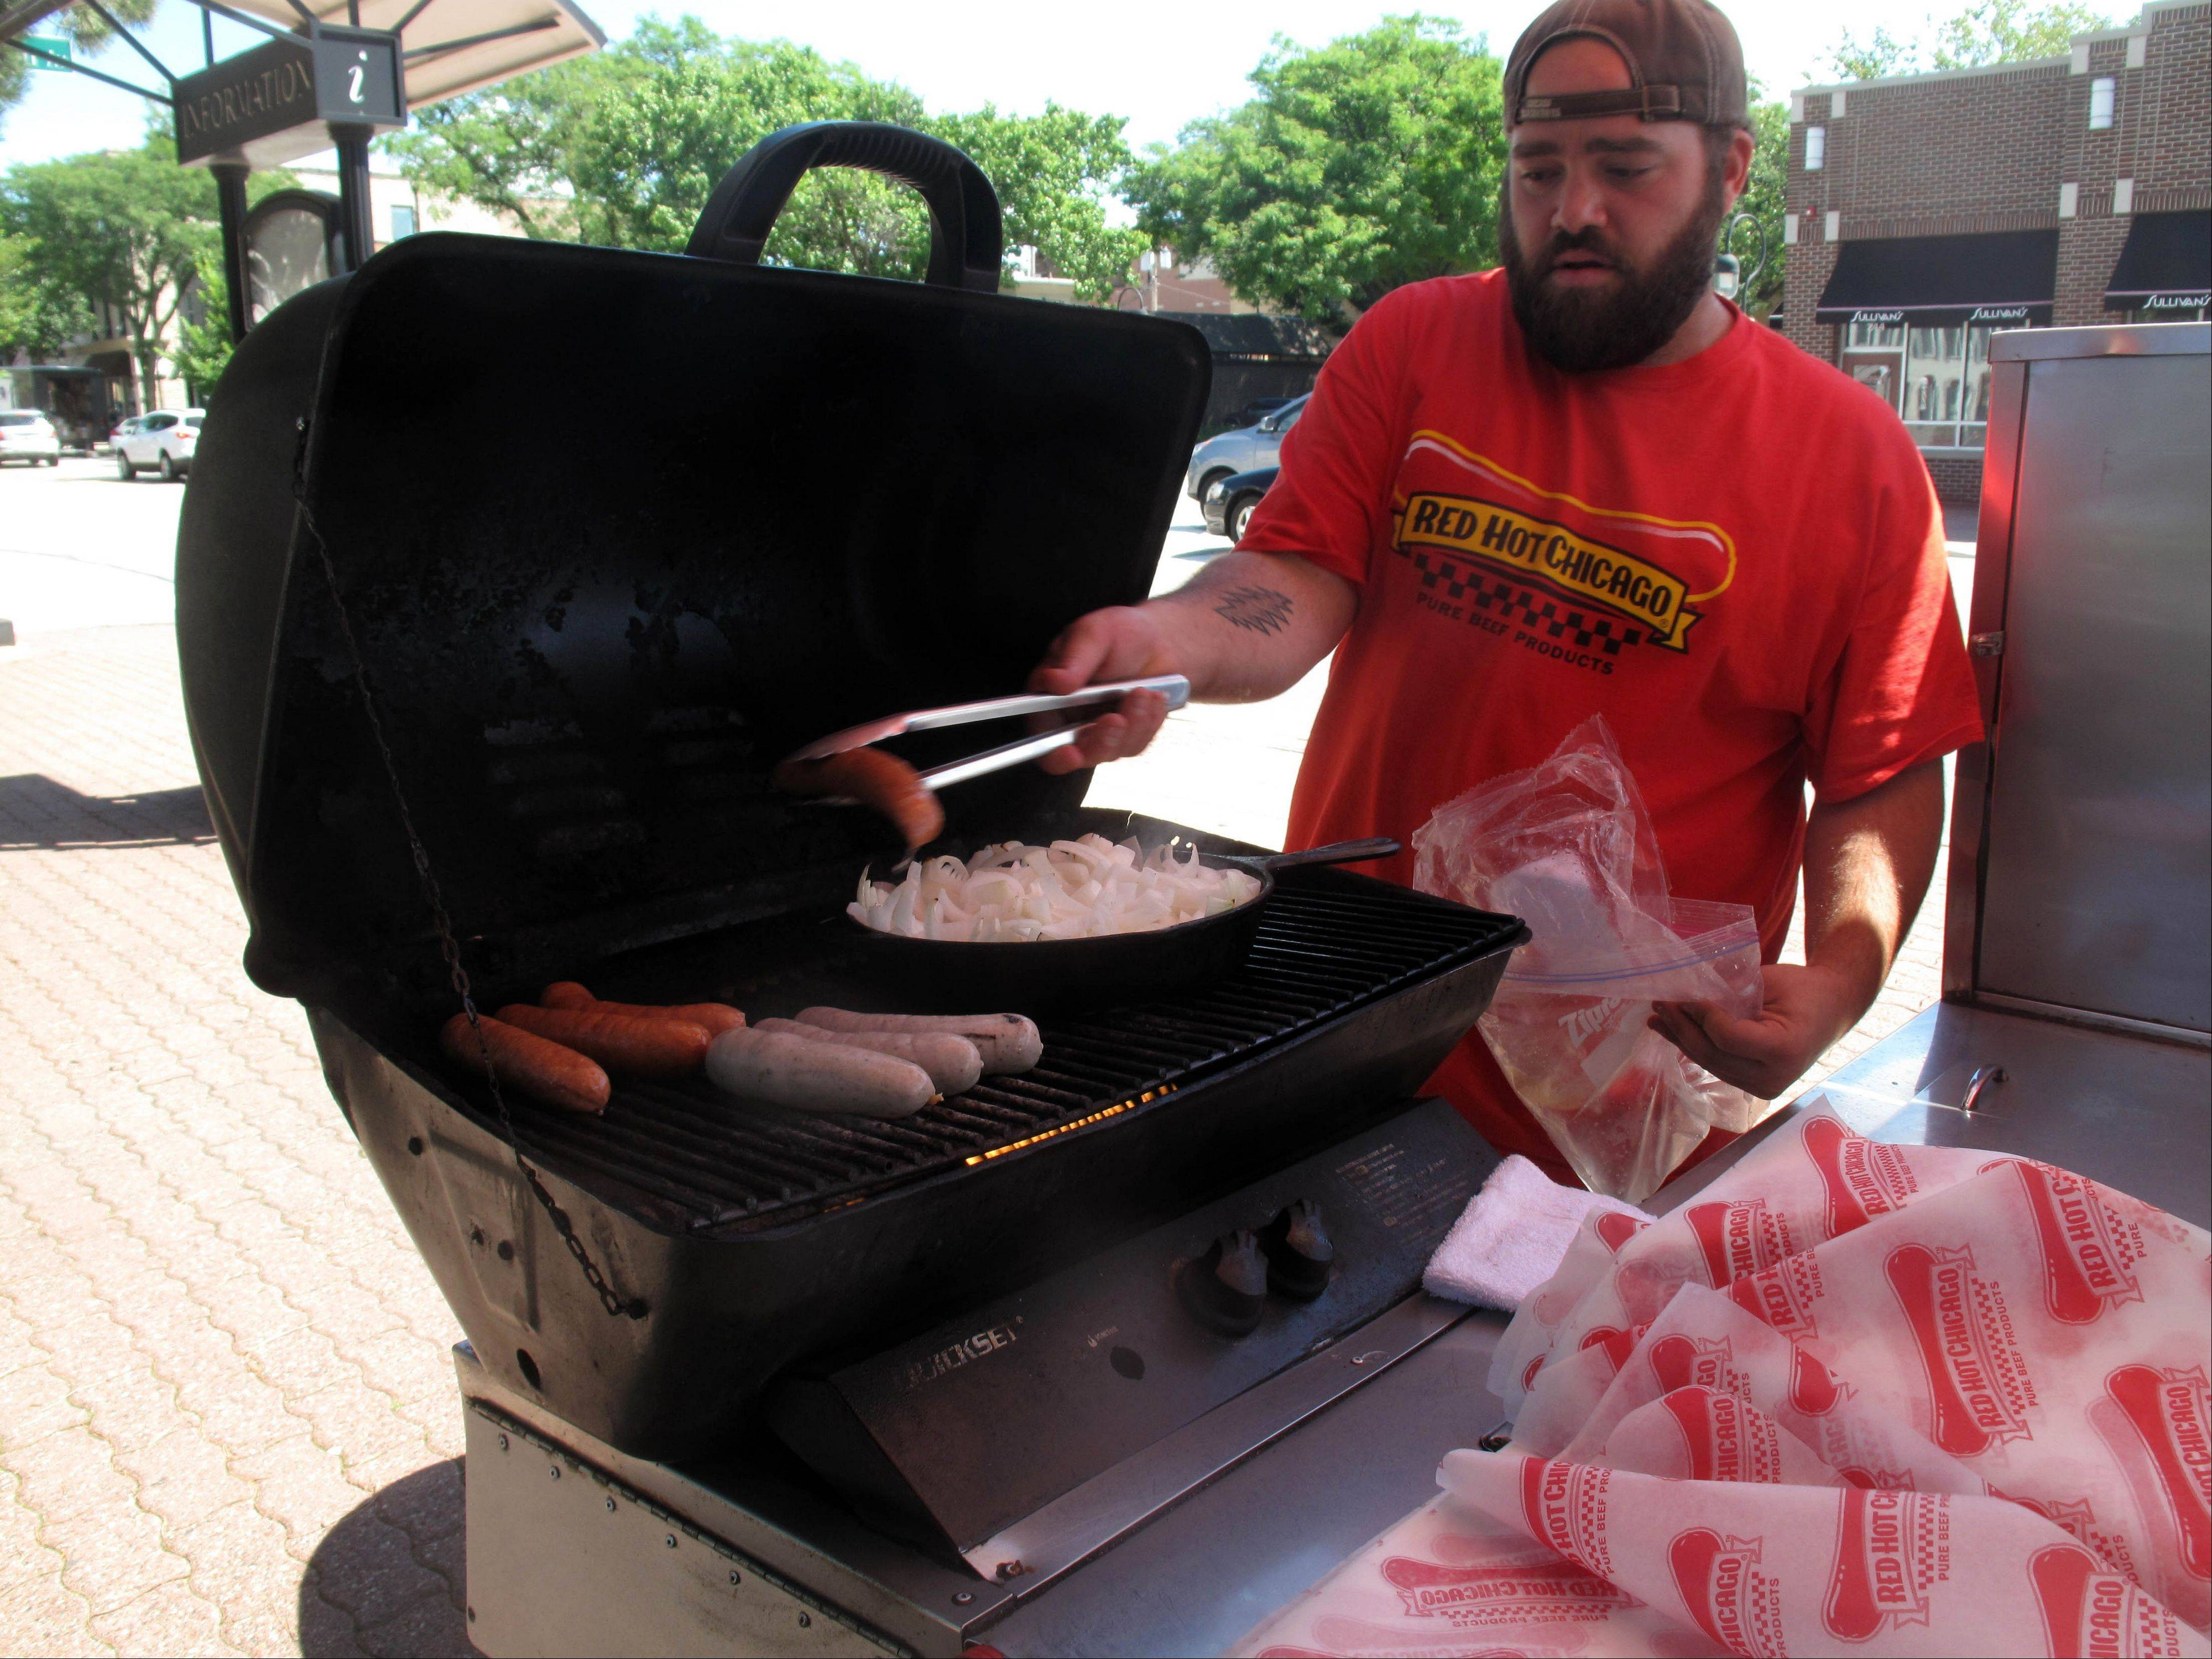 Joe Hornbaker of Joey�s Red Hots starts grilling hot dogs, brats and onions from his food cart on Main Street just south of Jackson Avenue near the Riverwalk�s horse trough fountain in Naperville. The city soon will survey the public to gather thoughts on food carts in the downtown.